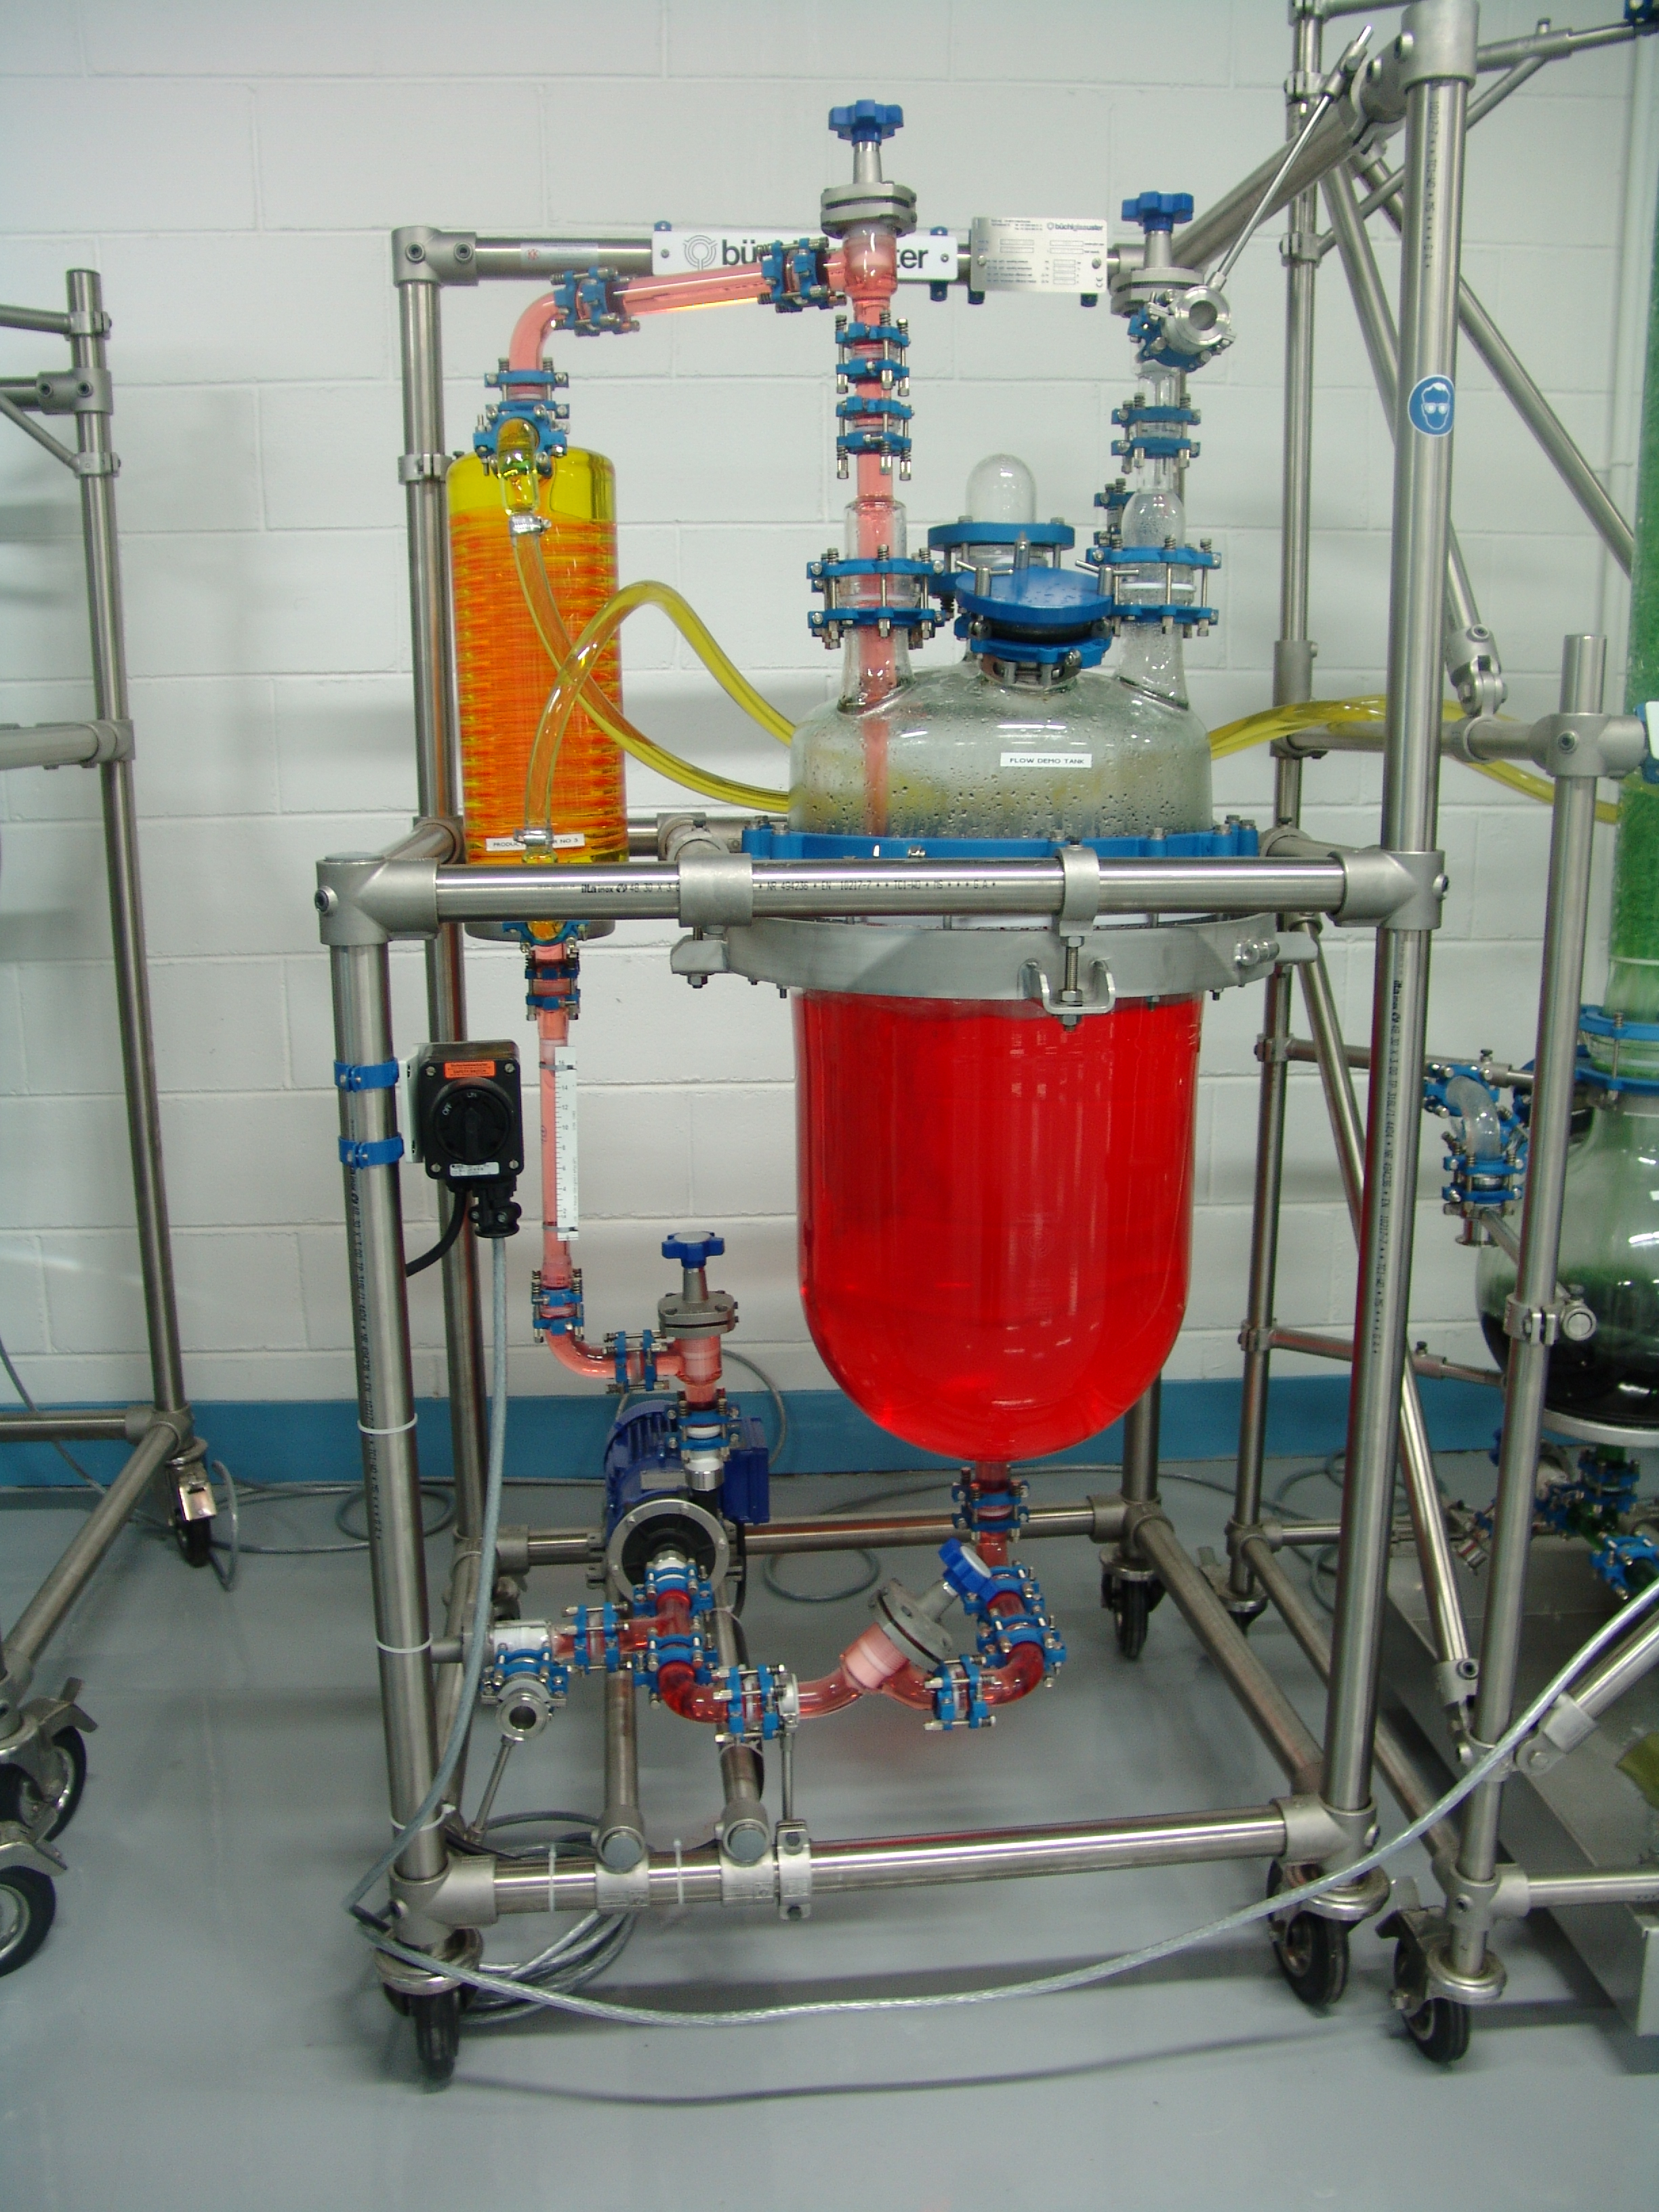 College Laboratory Biodiesel Production